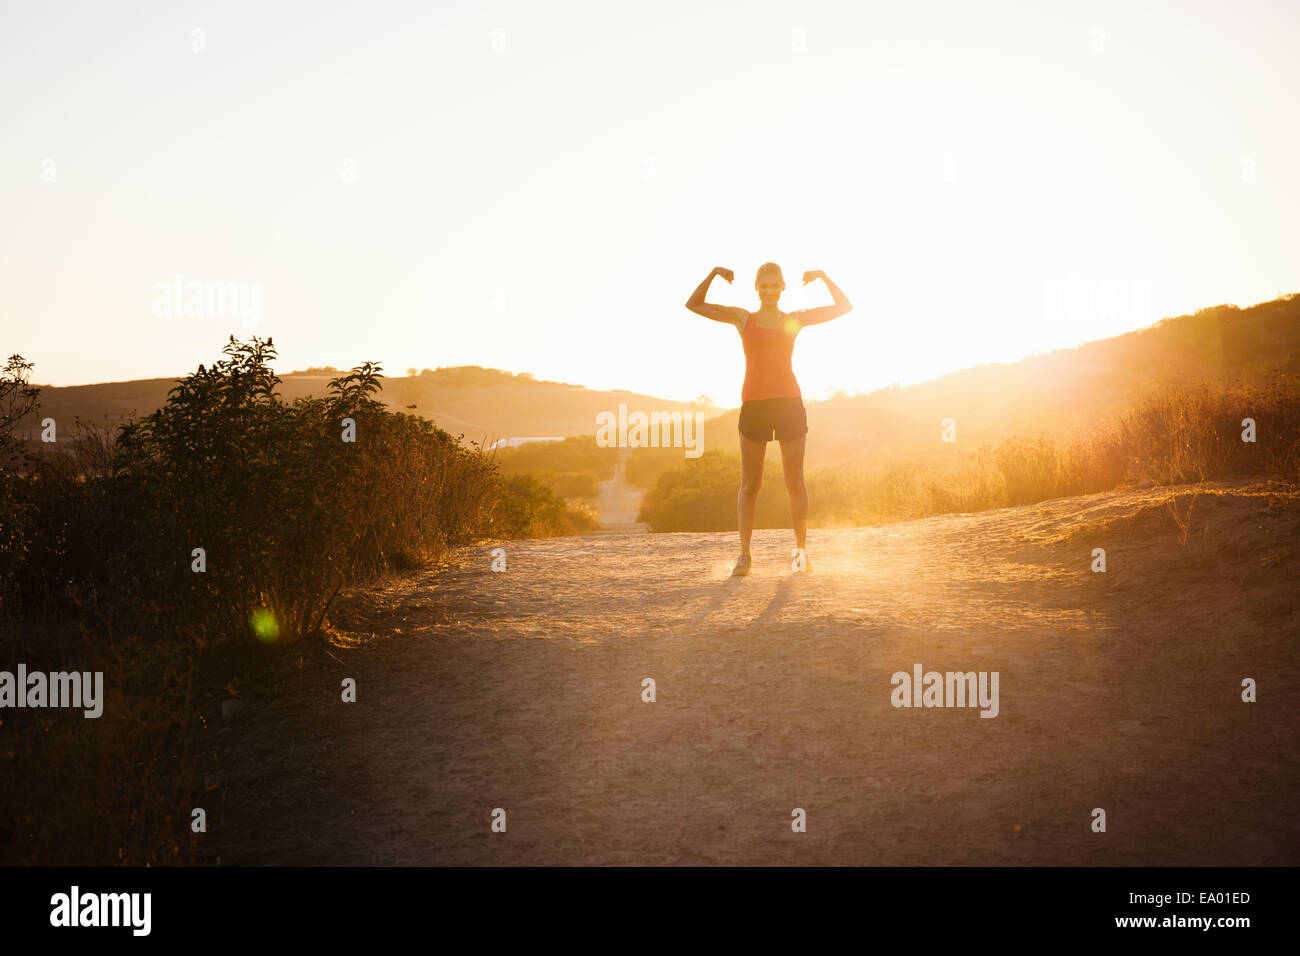 Female jogger flexing arms in sunlight, Poway, CA, USA - Stock Image